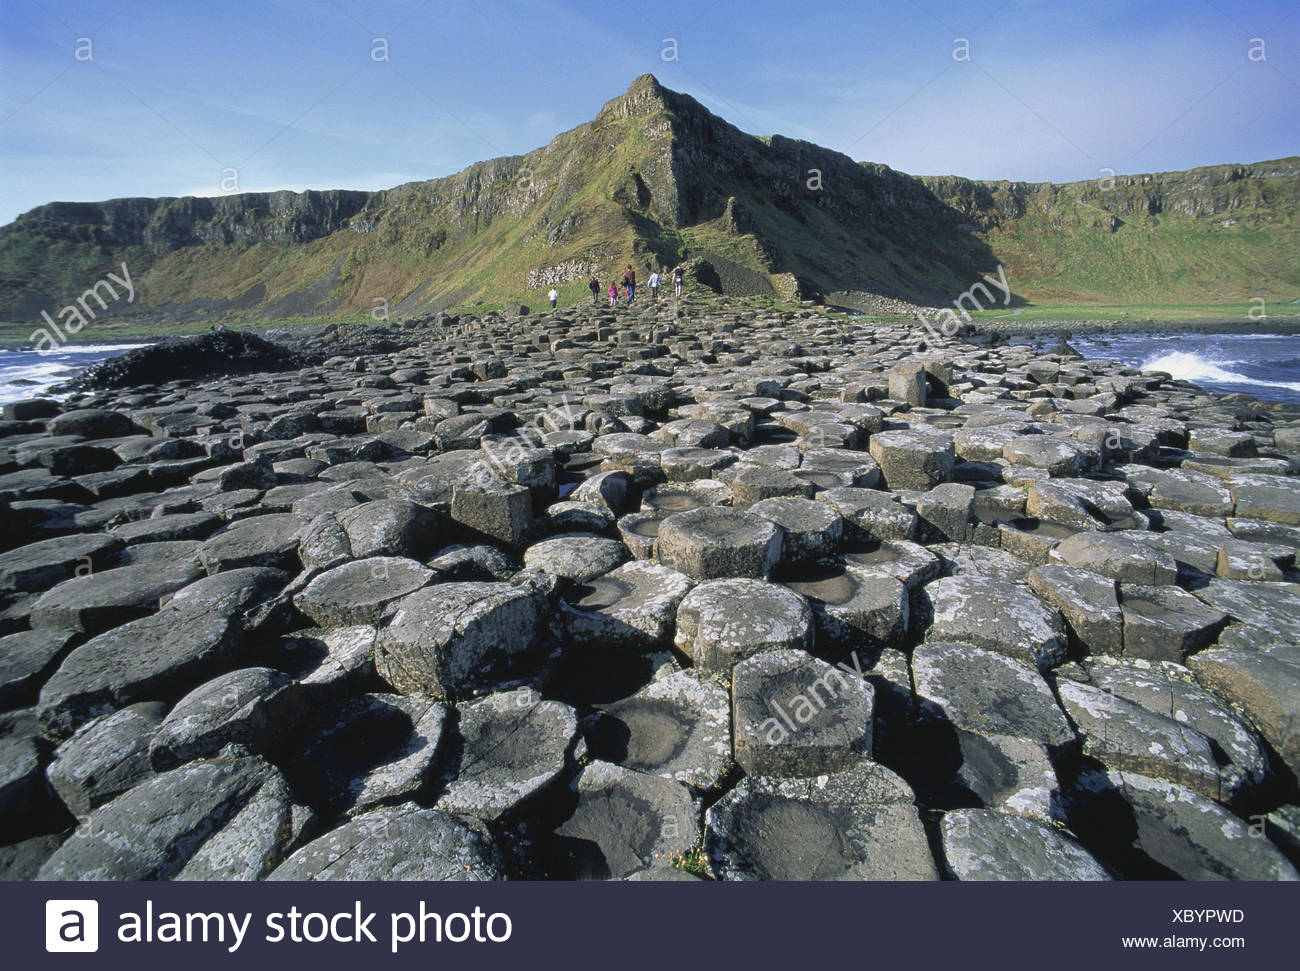 Northern Ireland, county Antrim, bile coast, Giant's Causeway, tourist Ireland, Northern Ireland, coast, basalt, basalt rock, formation, Volcanically, place of interest, nature miracle, coast, outpouring rock, volcano rock, lava rock, cliff coast paragraph, cliff coast Stock Photo